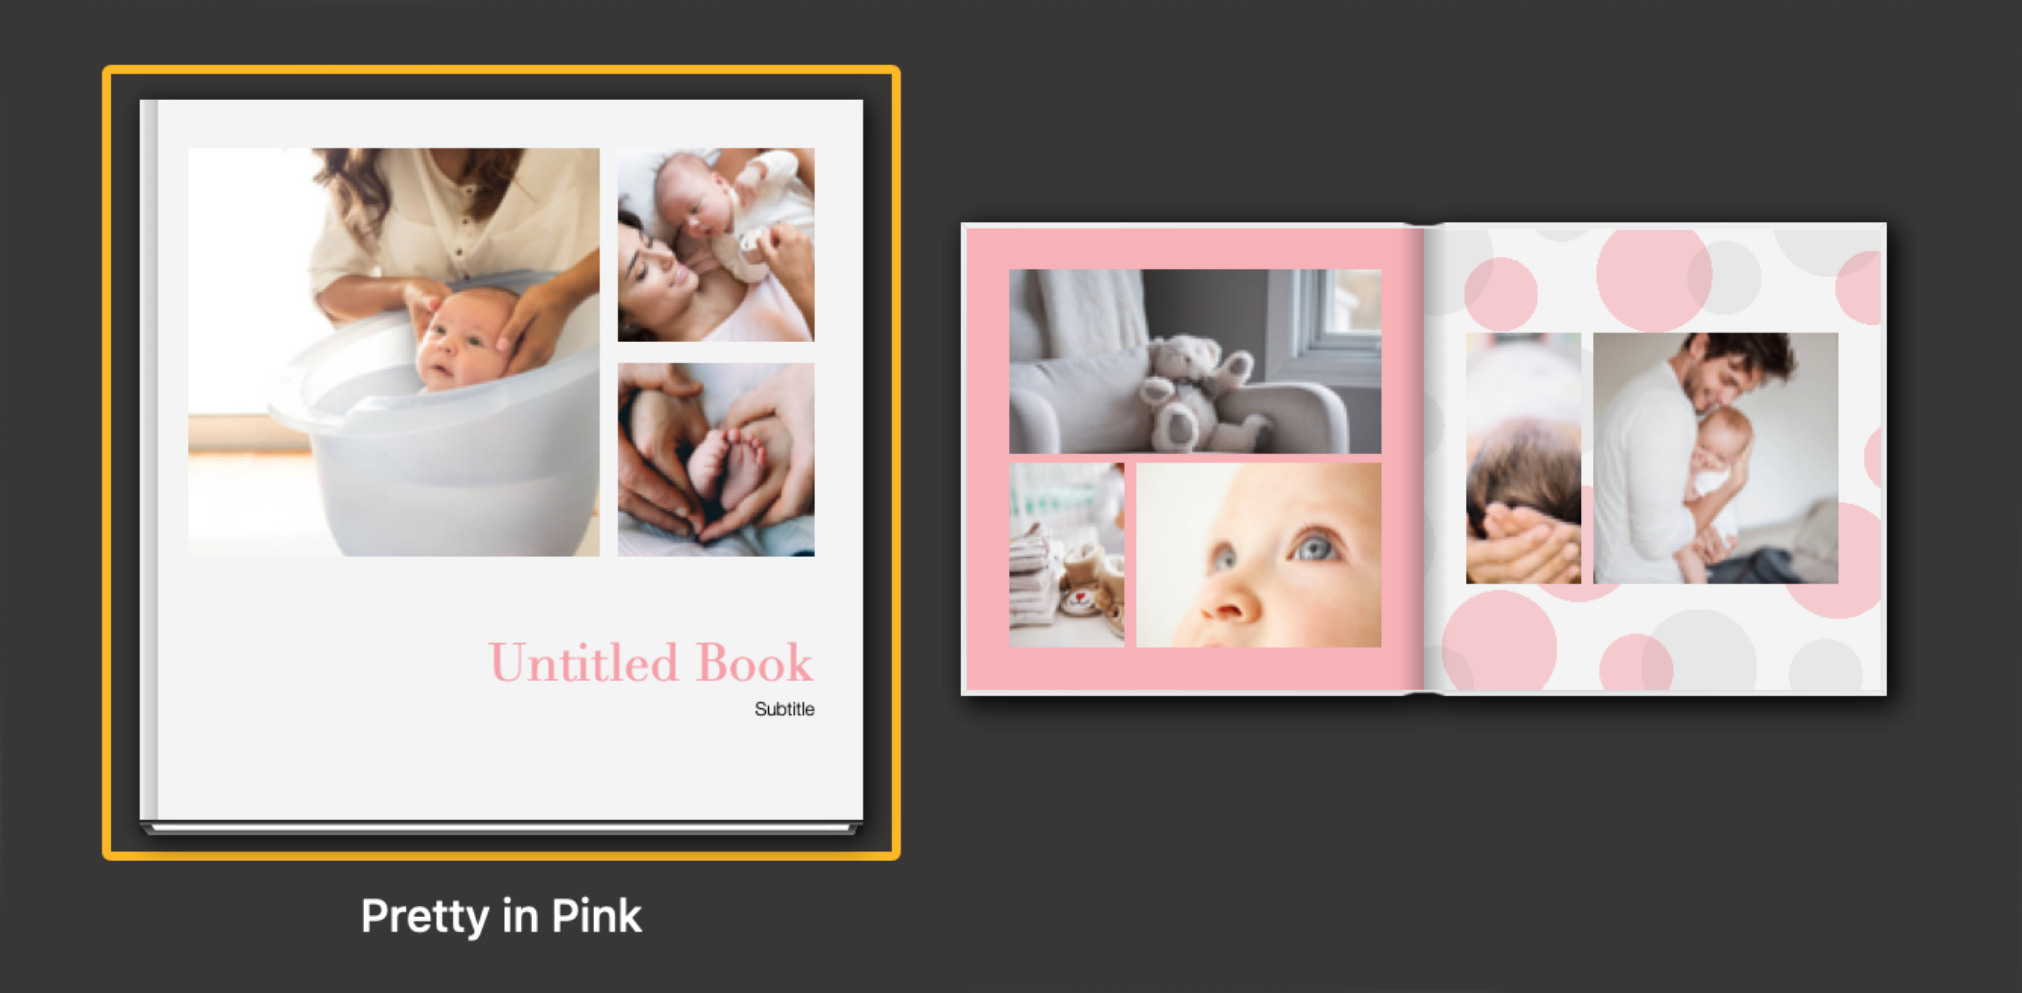 photo album theme in pink and white